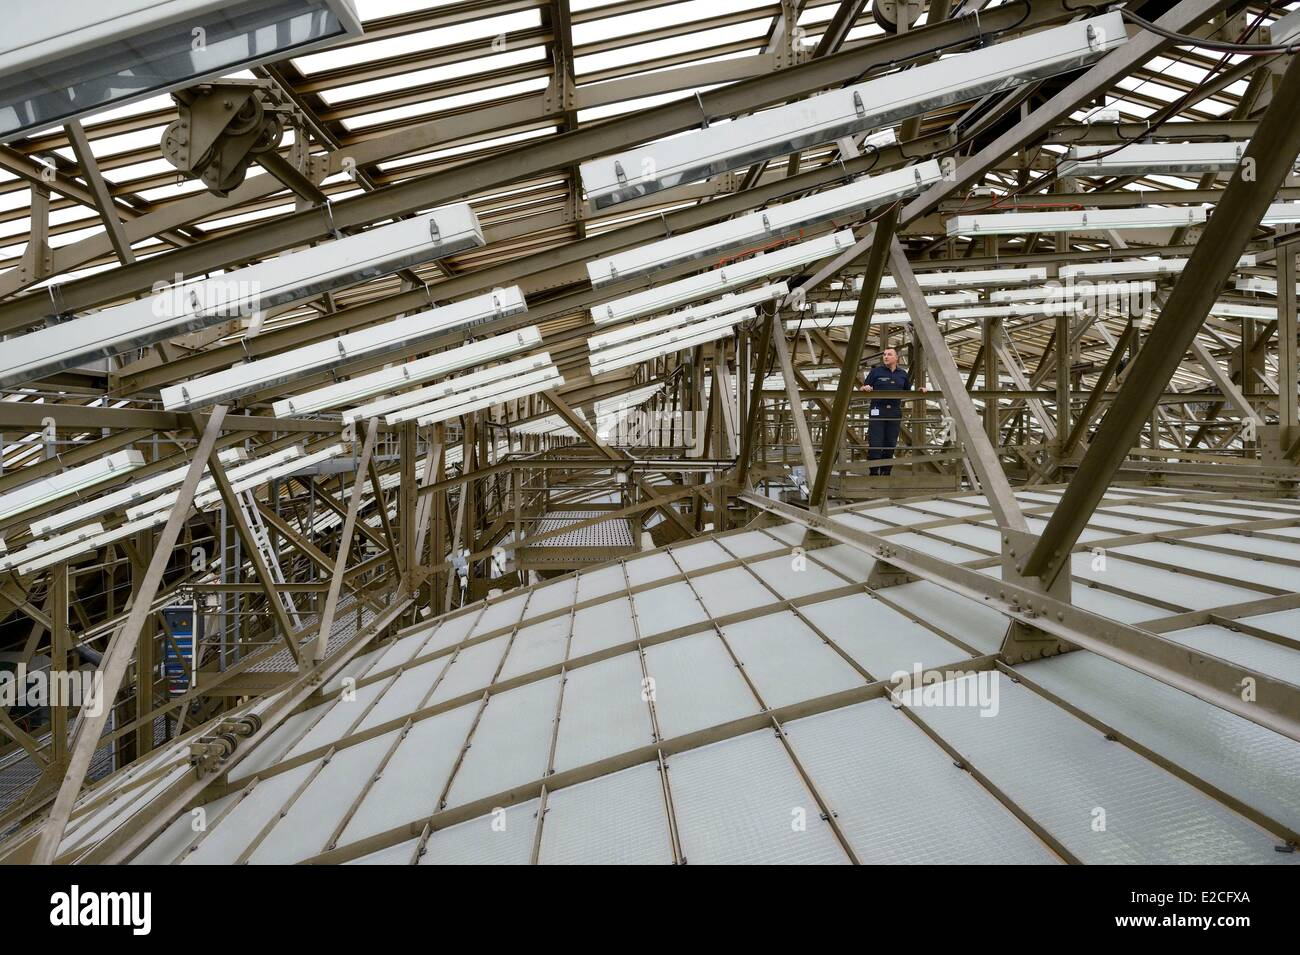 France, Paris, the Orsay Museum, the attic also called double skin over the former train station - Stock Image